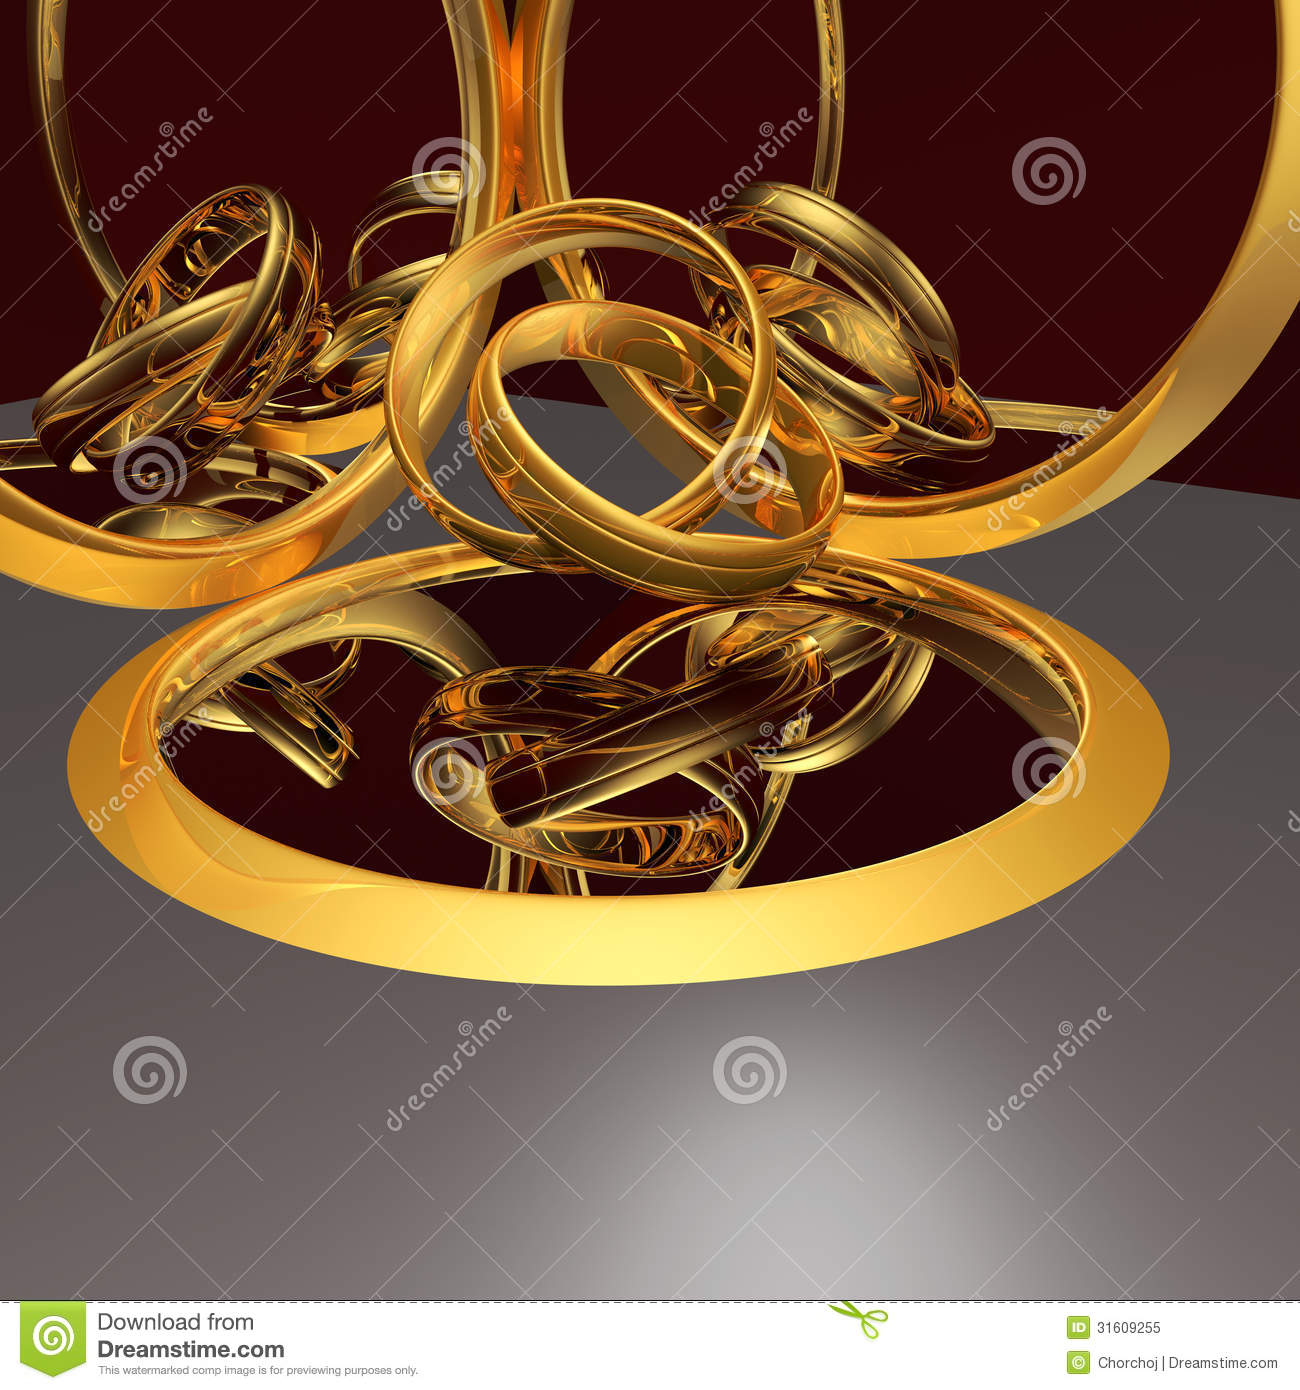 Tangled Wedding Rings Between Mirrors Royalty Free Stock Photo Image 31609255